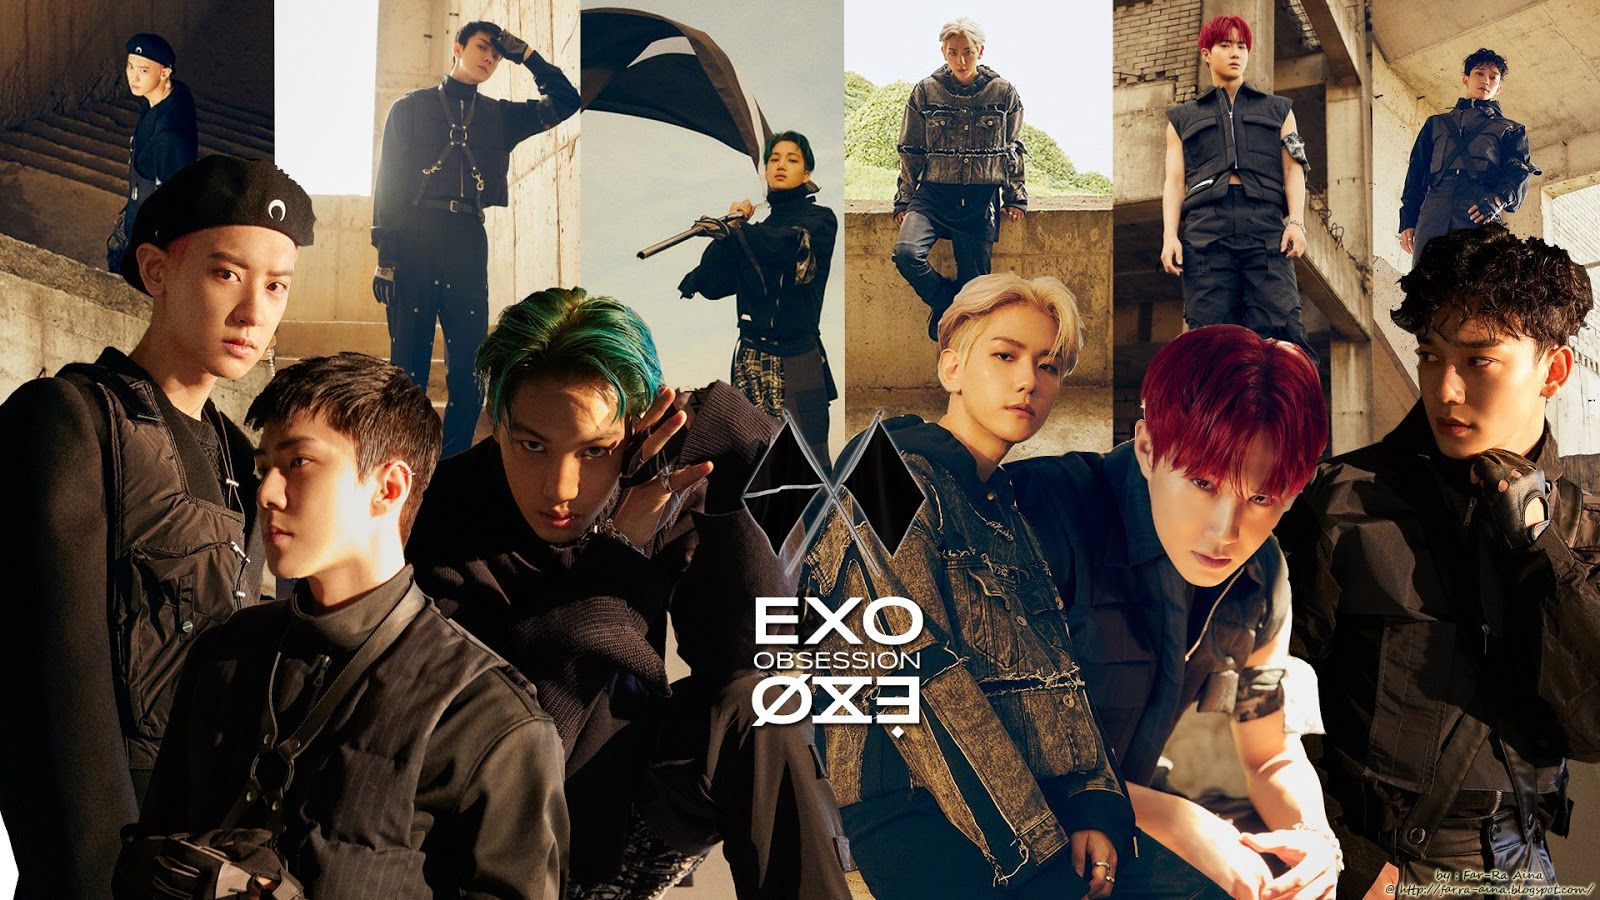 Exo Obsession Wallpapers Top Free Exo Obsession Backgrounds